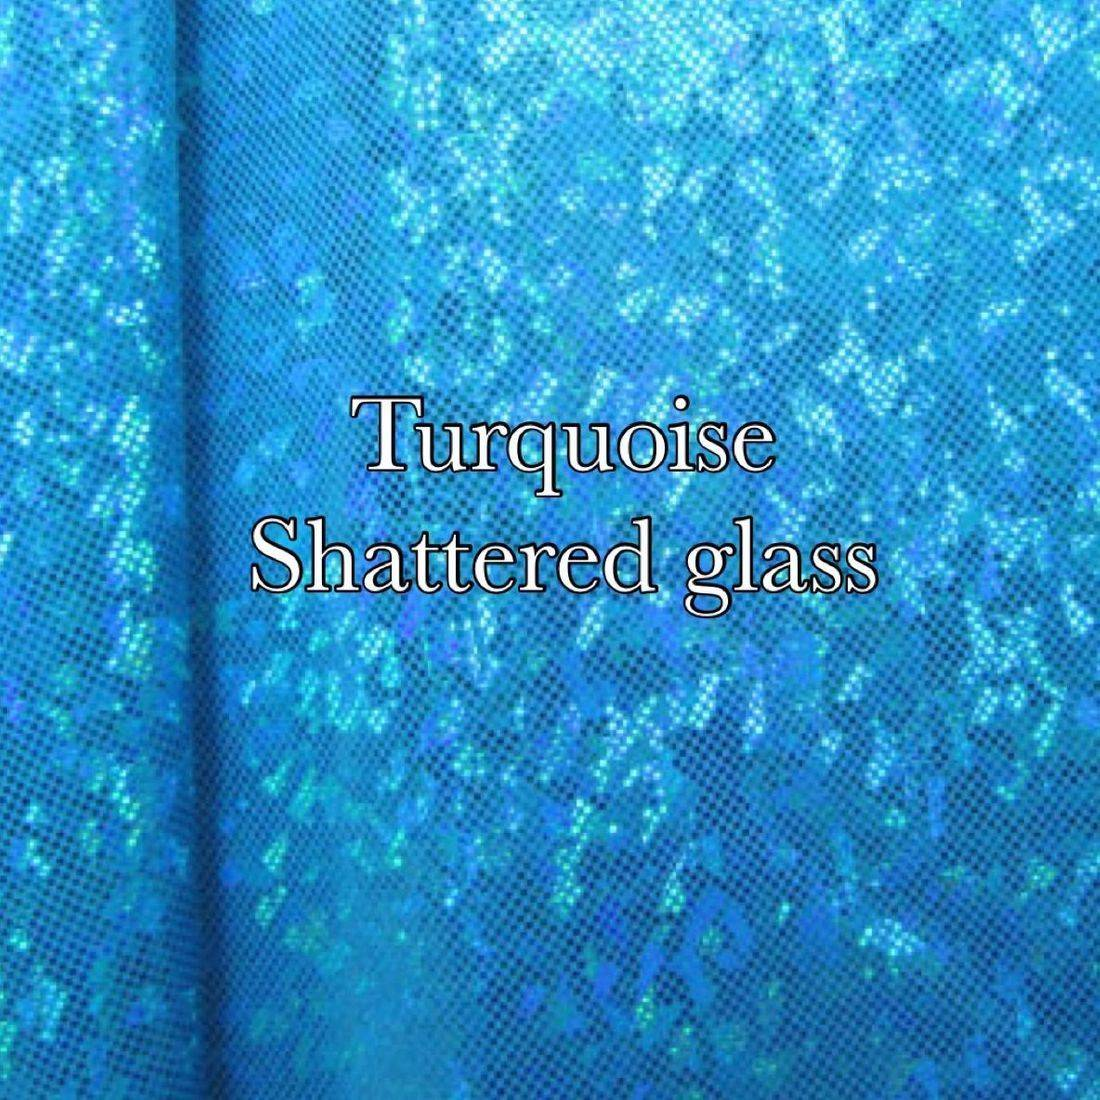 Turquoise shatter glass